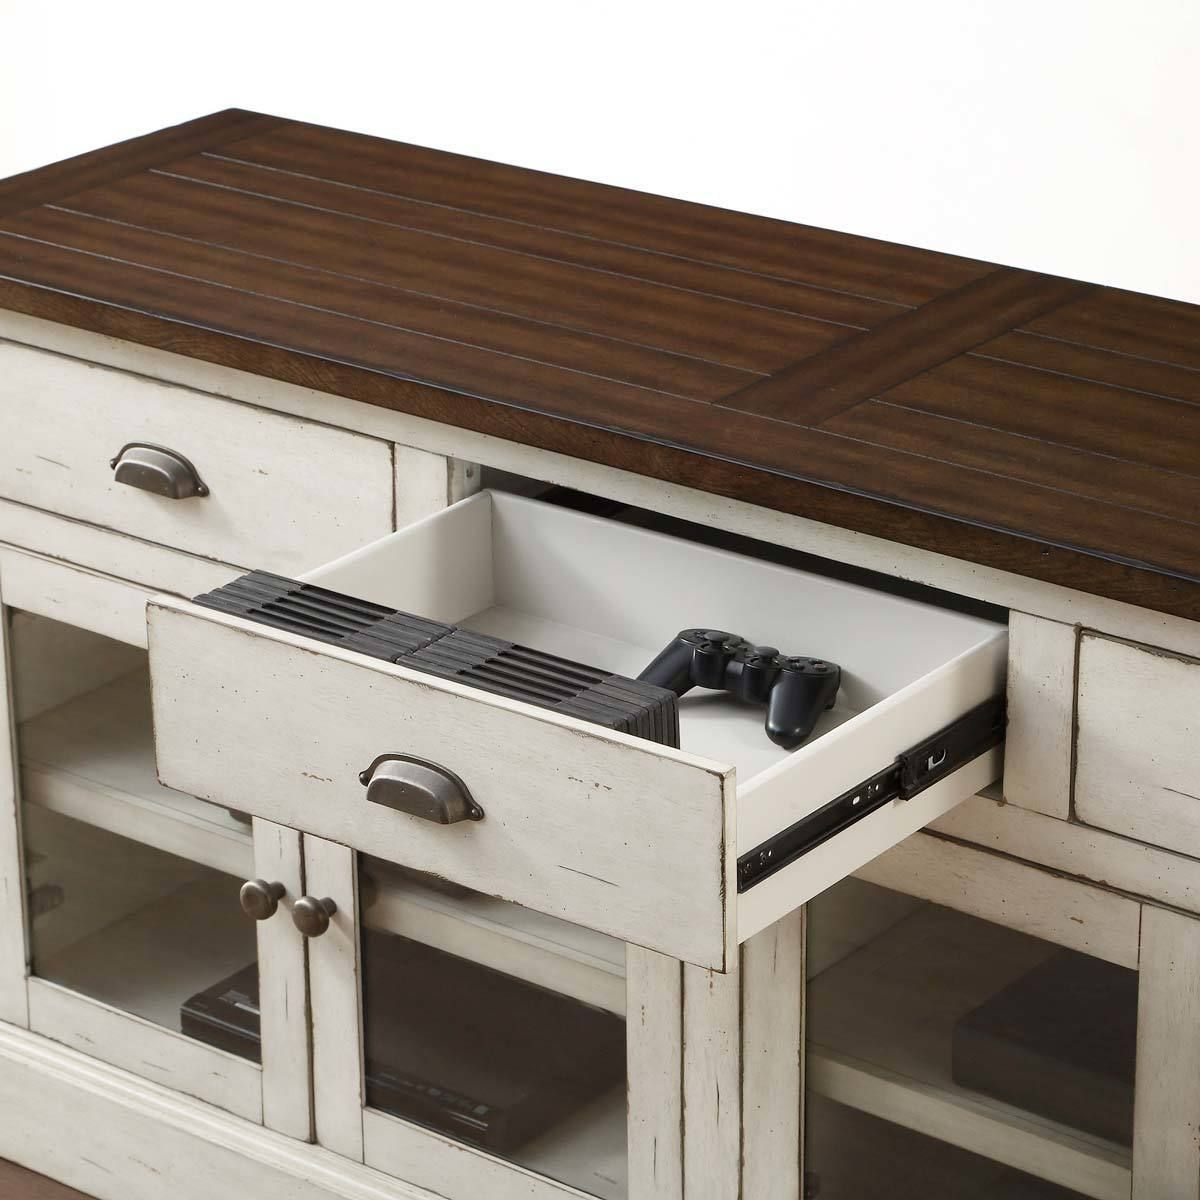 bayside furnishings accent console cabinetry table target teal end bunnings outdoor sun lounges silver grey tablecloth nautical style lighting plastic patio chairs ikea battery